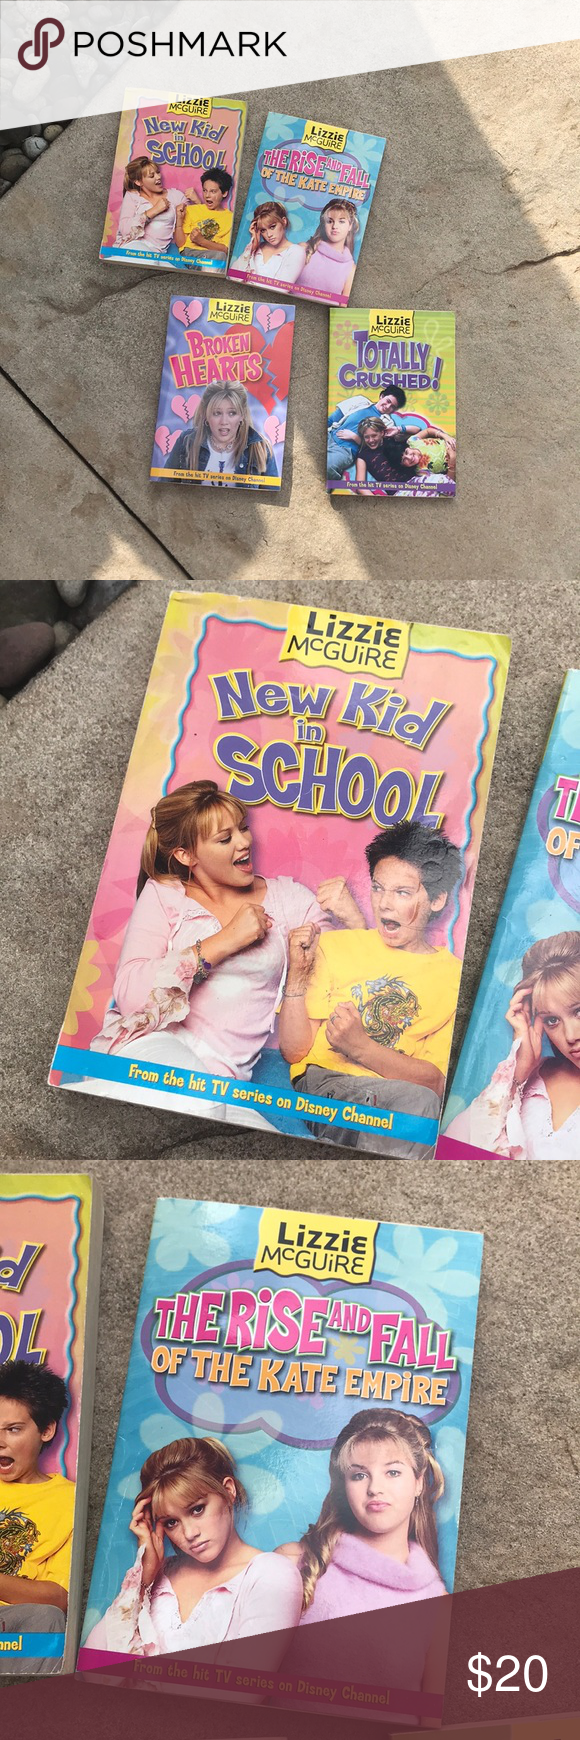 Lizzie McGuire bundle of books Bundle of books Disney Other #lizziemcguire Lizzie McGuire bundle of books Bundle of books Disney Other #lizziemcguire